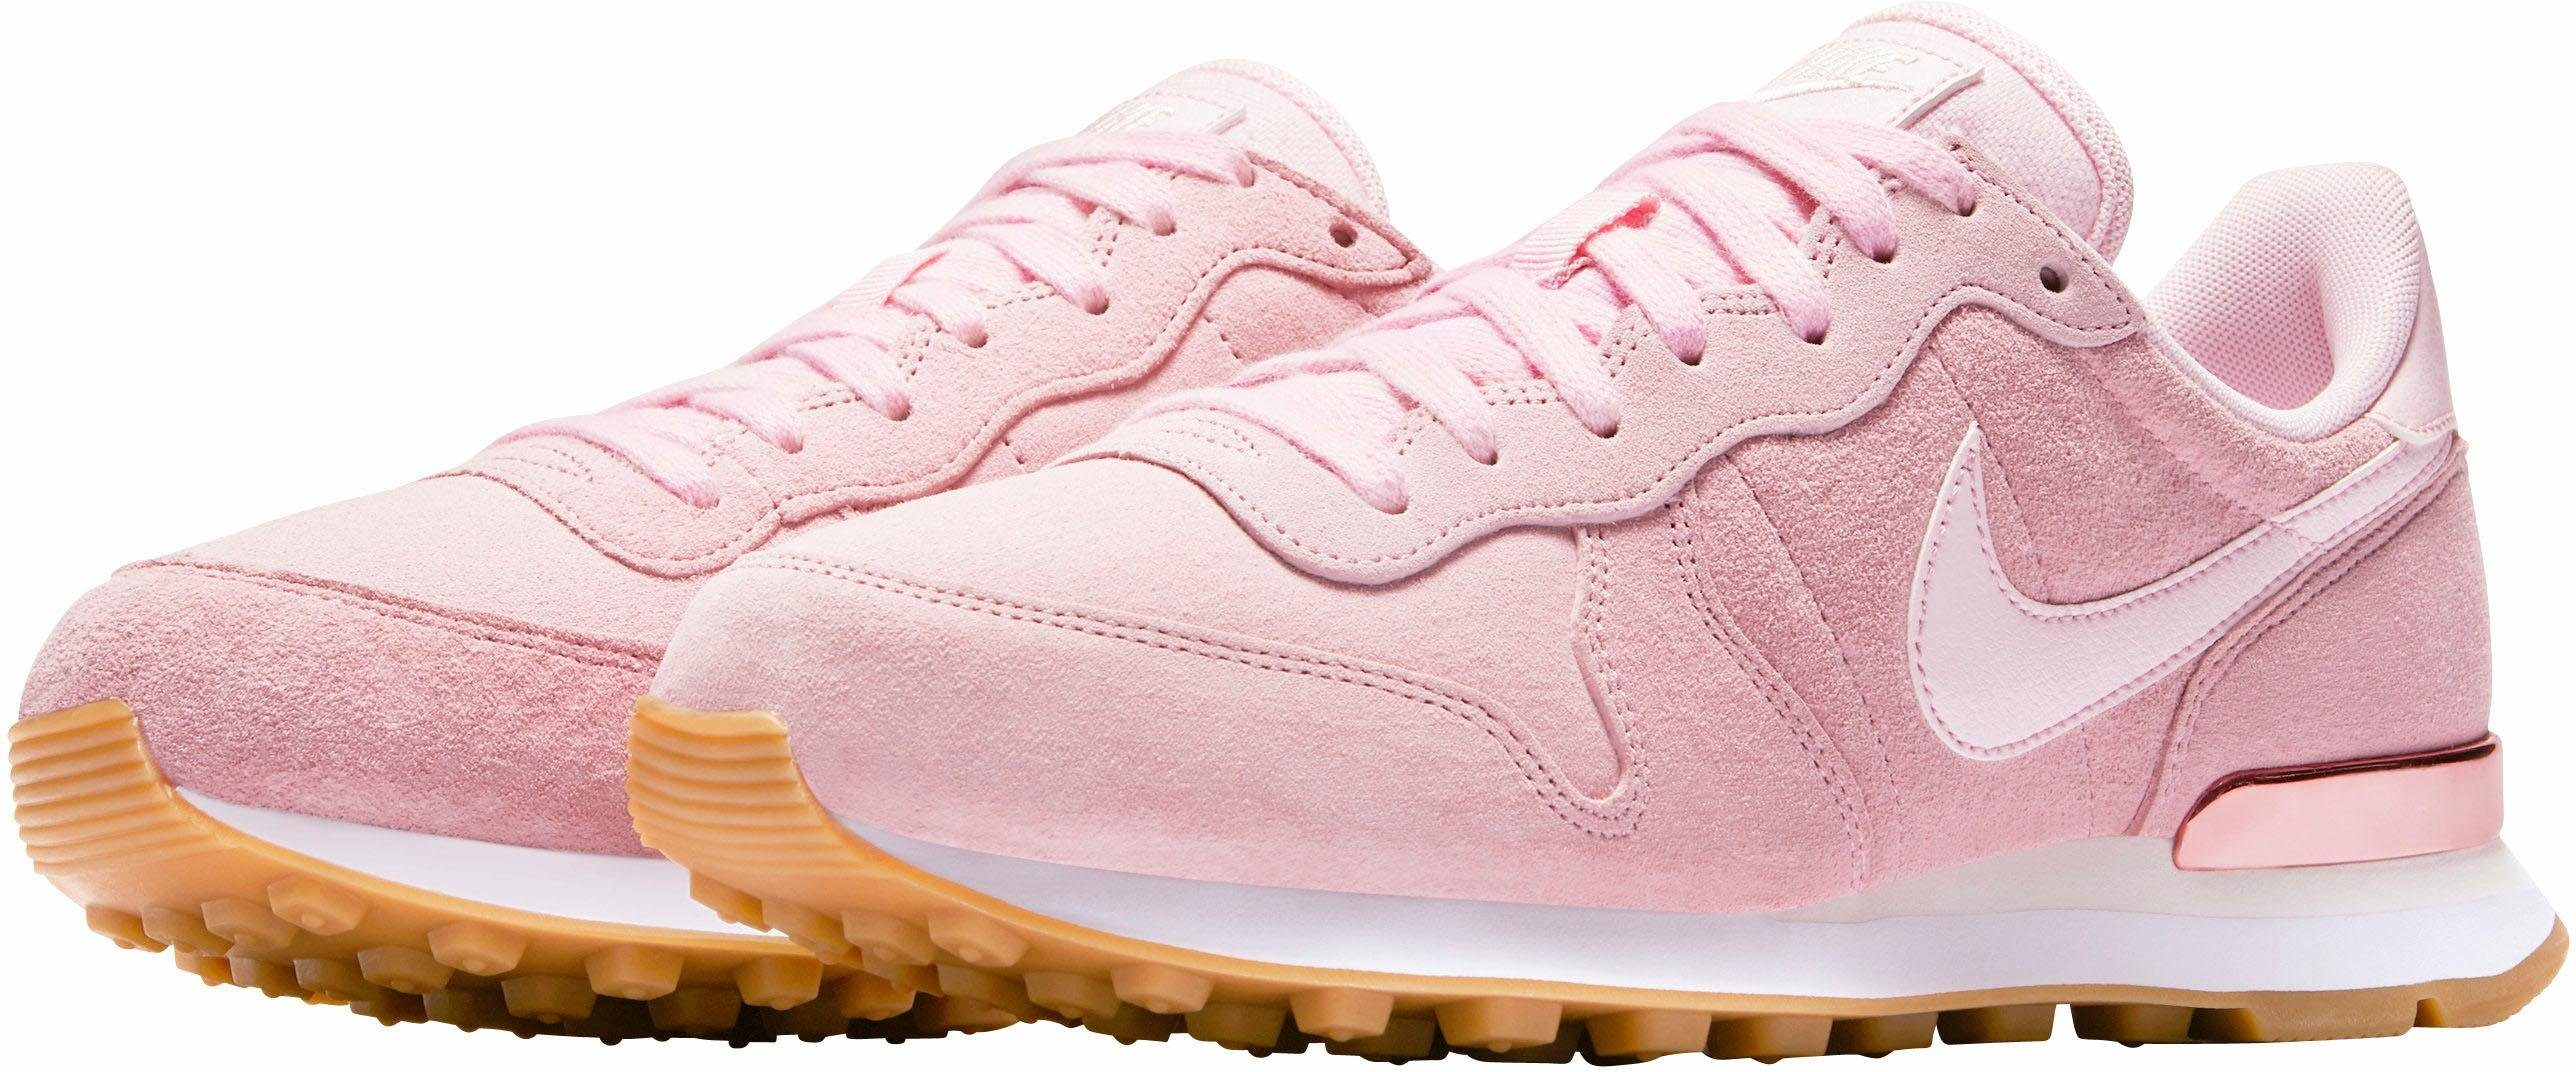 nike rosa internationalist